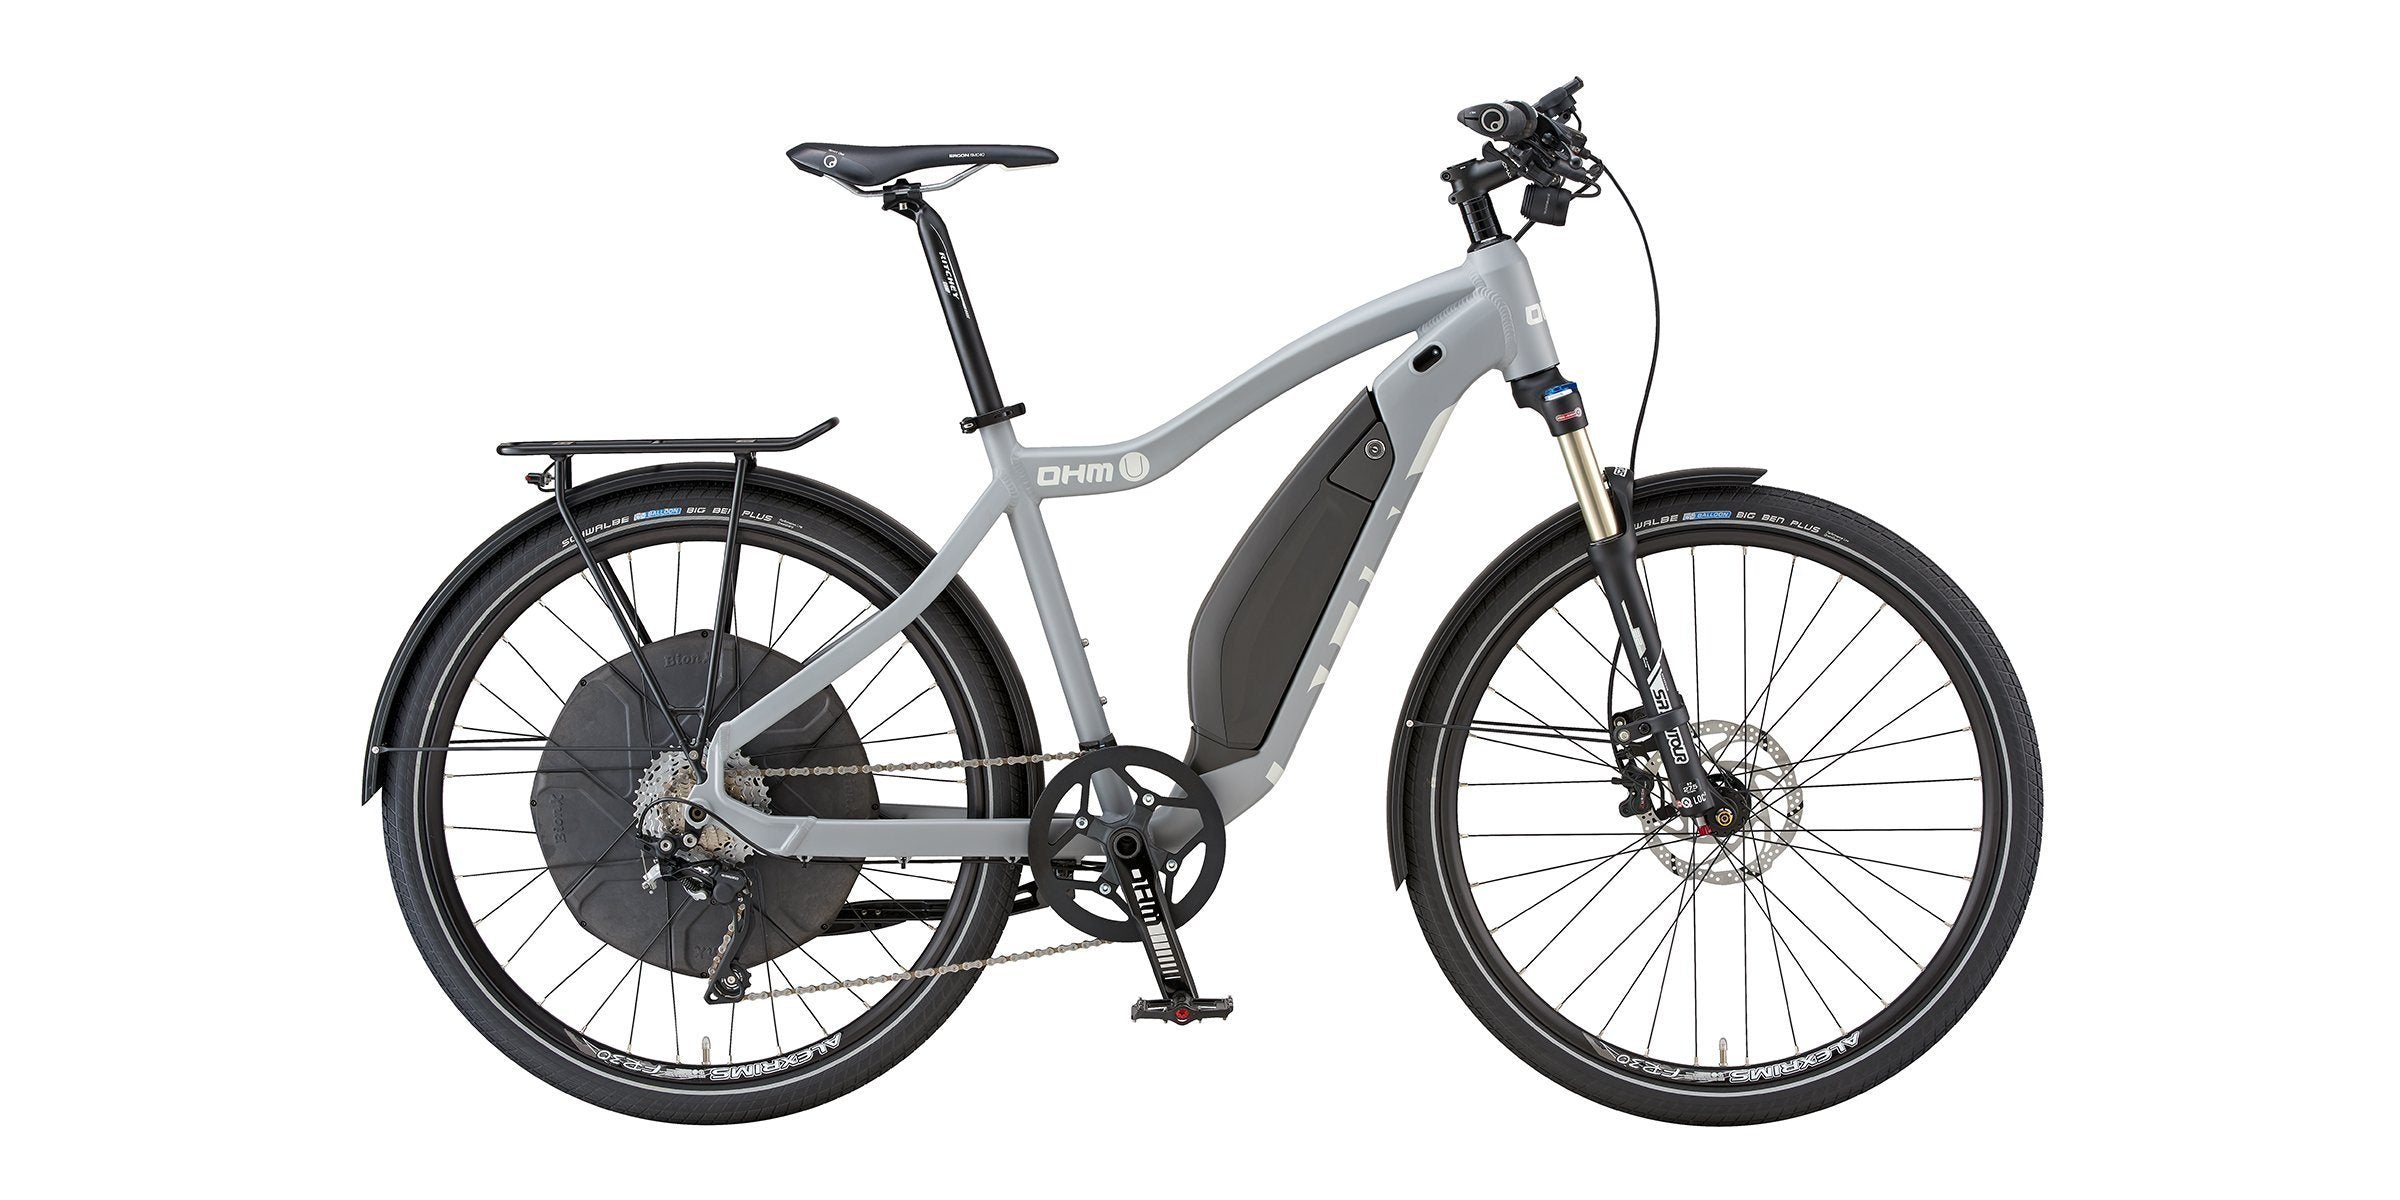 Urban E-Bike OHM Electric Bikes